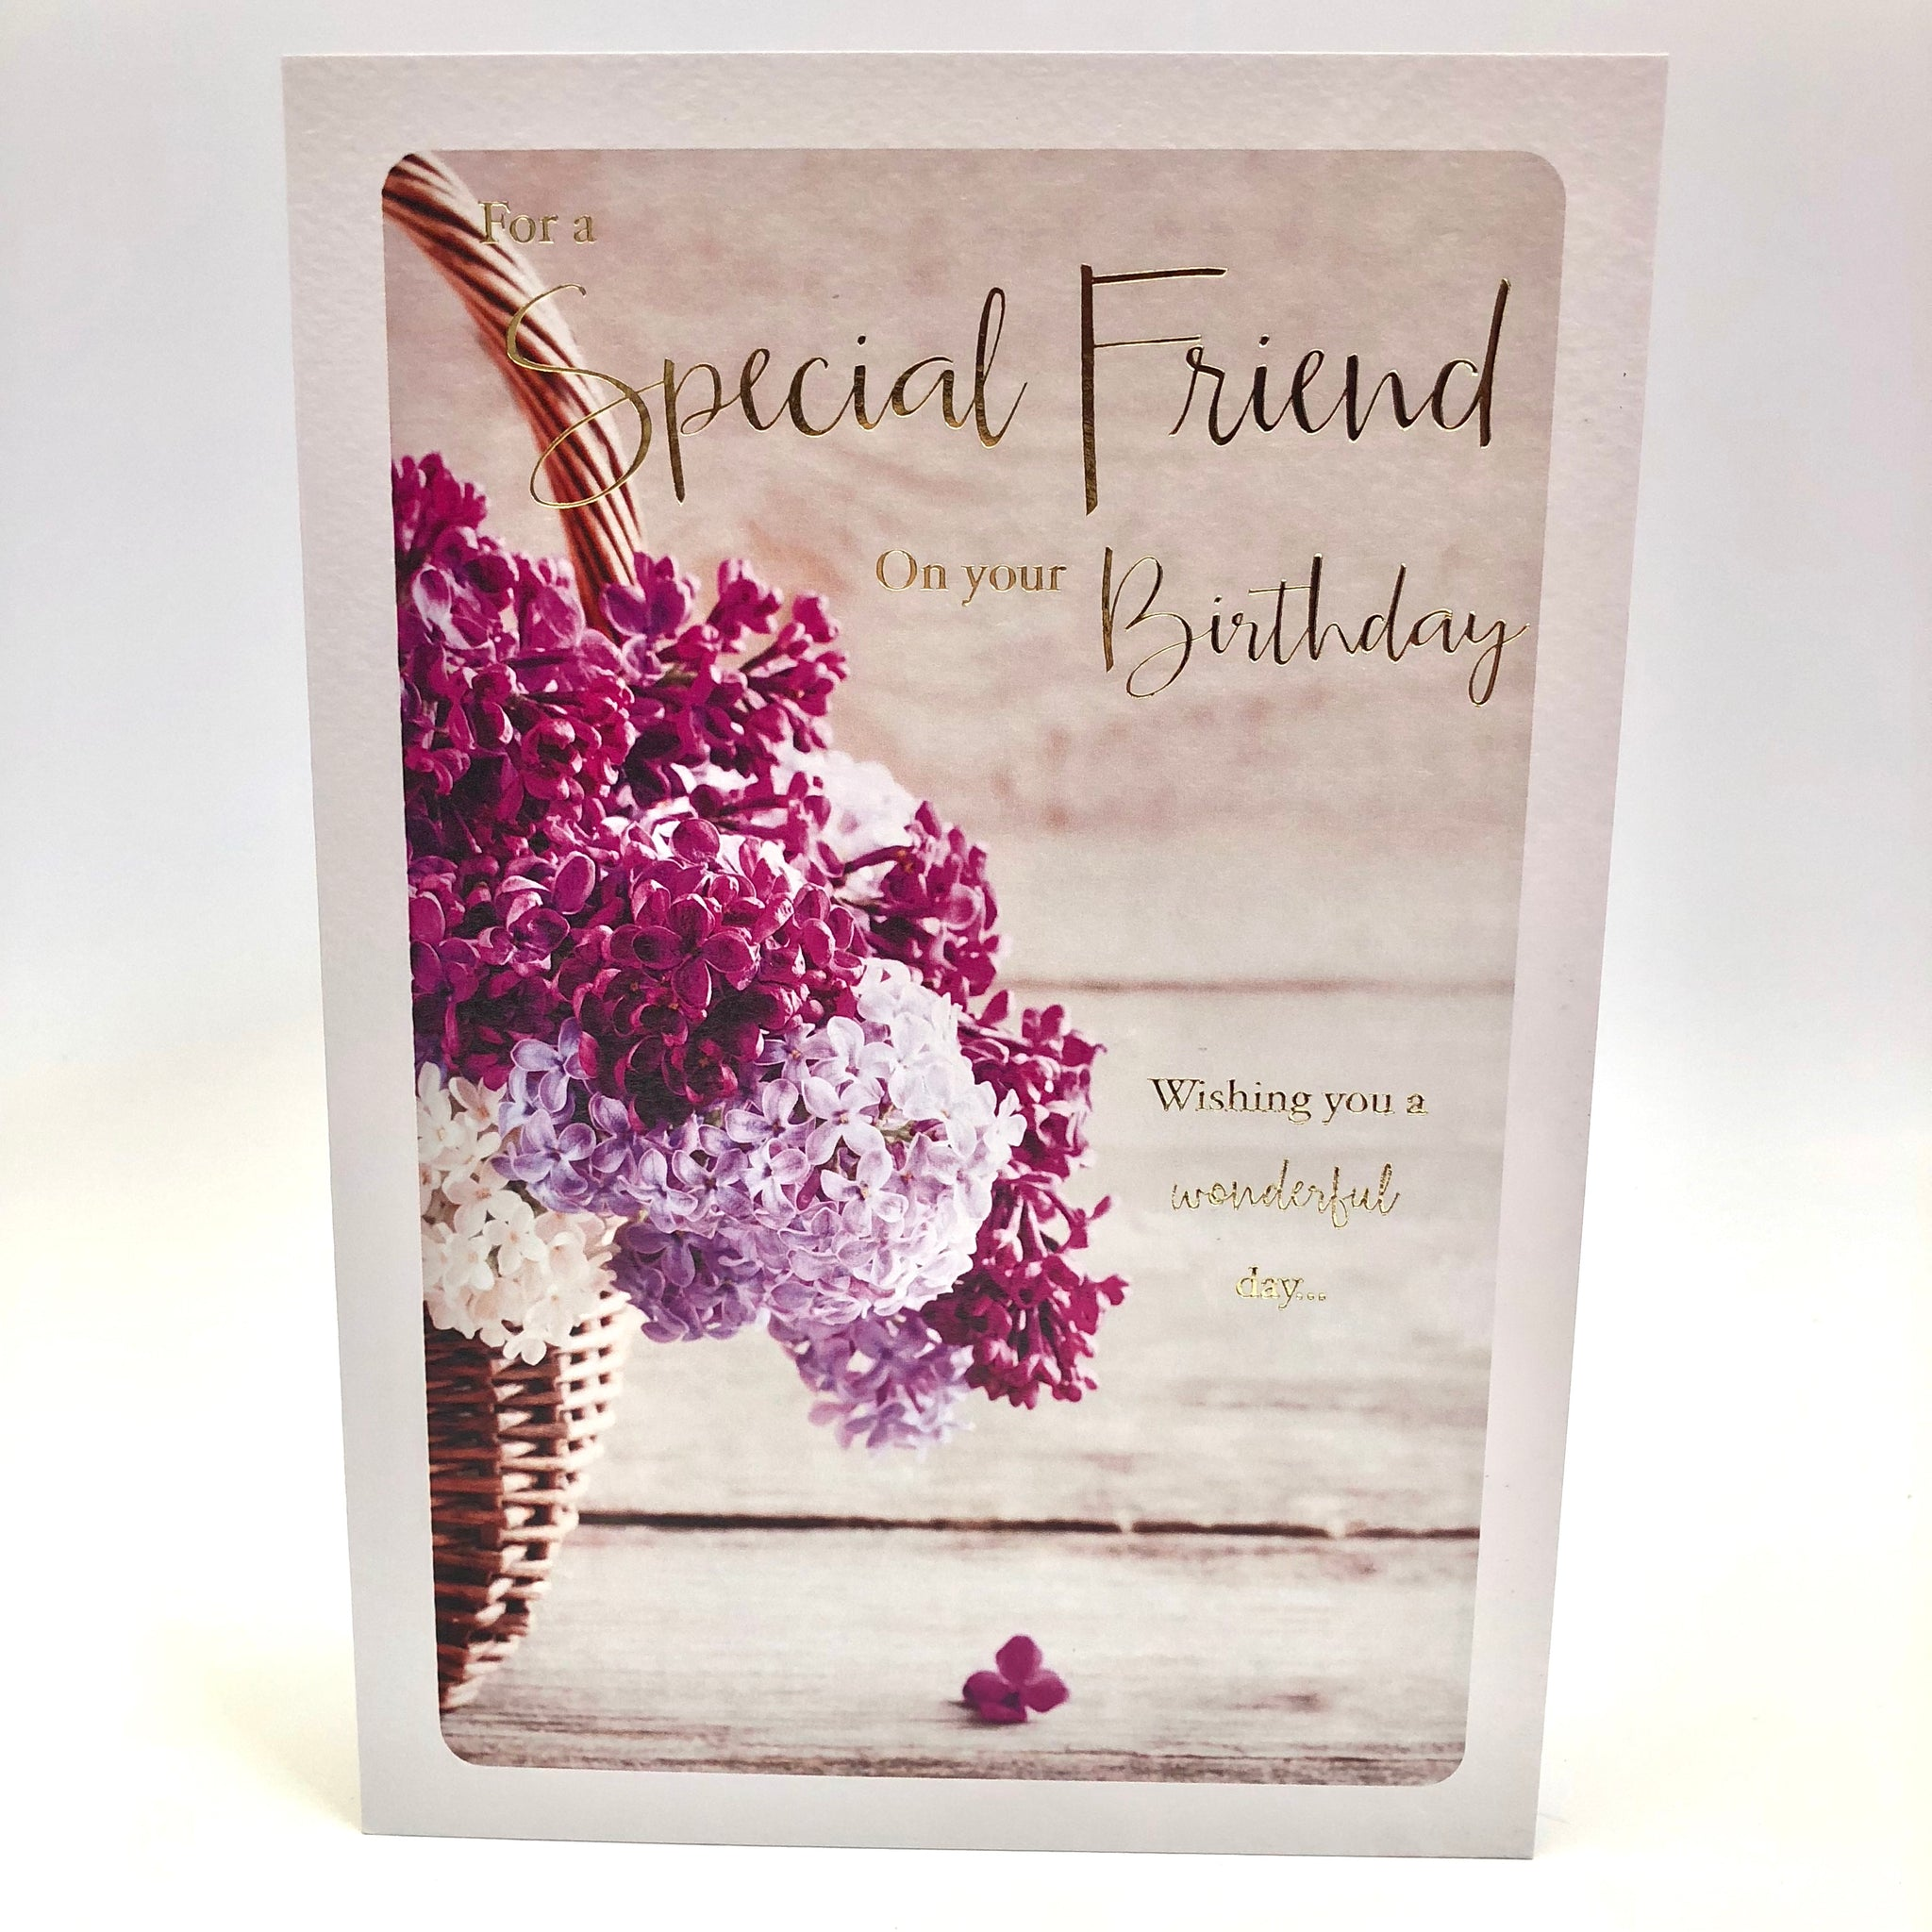 Special friend flowers birthday card rainbow bookshop swindon special friend flowers birthday card izmirmasajfo